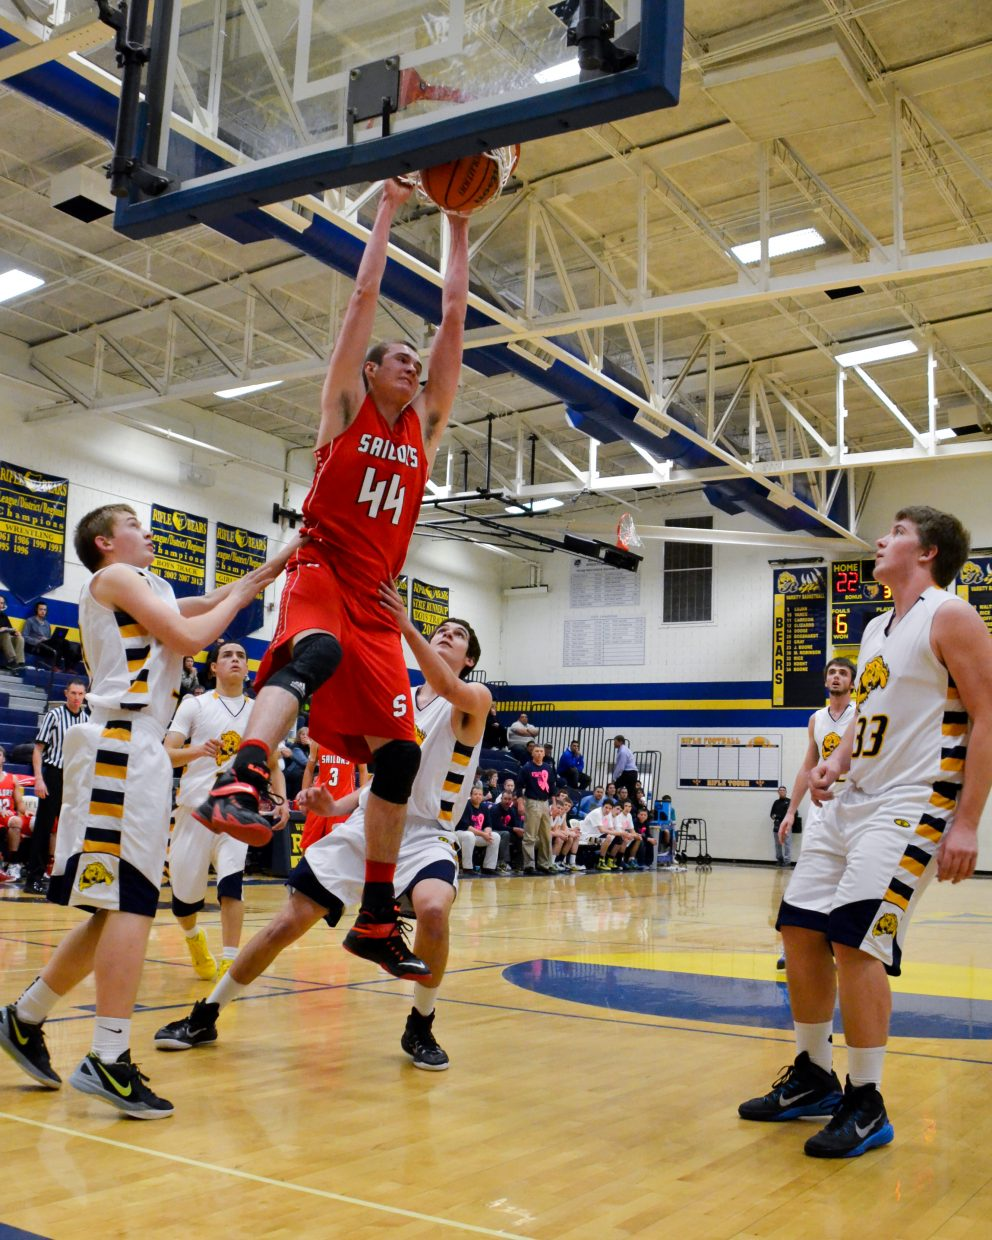 Garrett Bye plays a strong game against Rifle. Submitted by: Jan DePuy